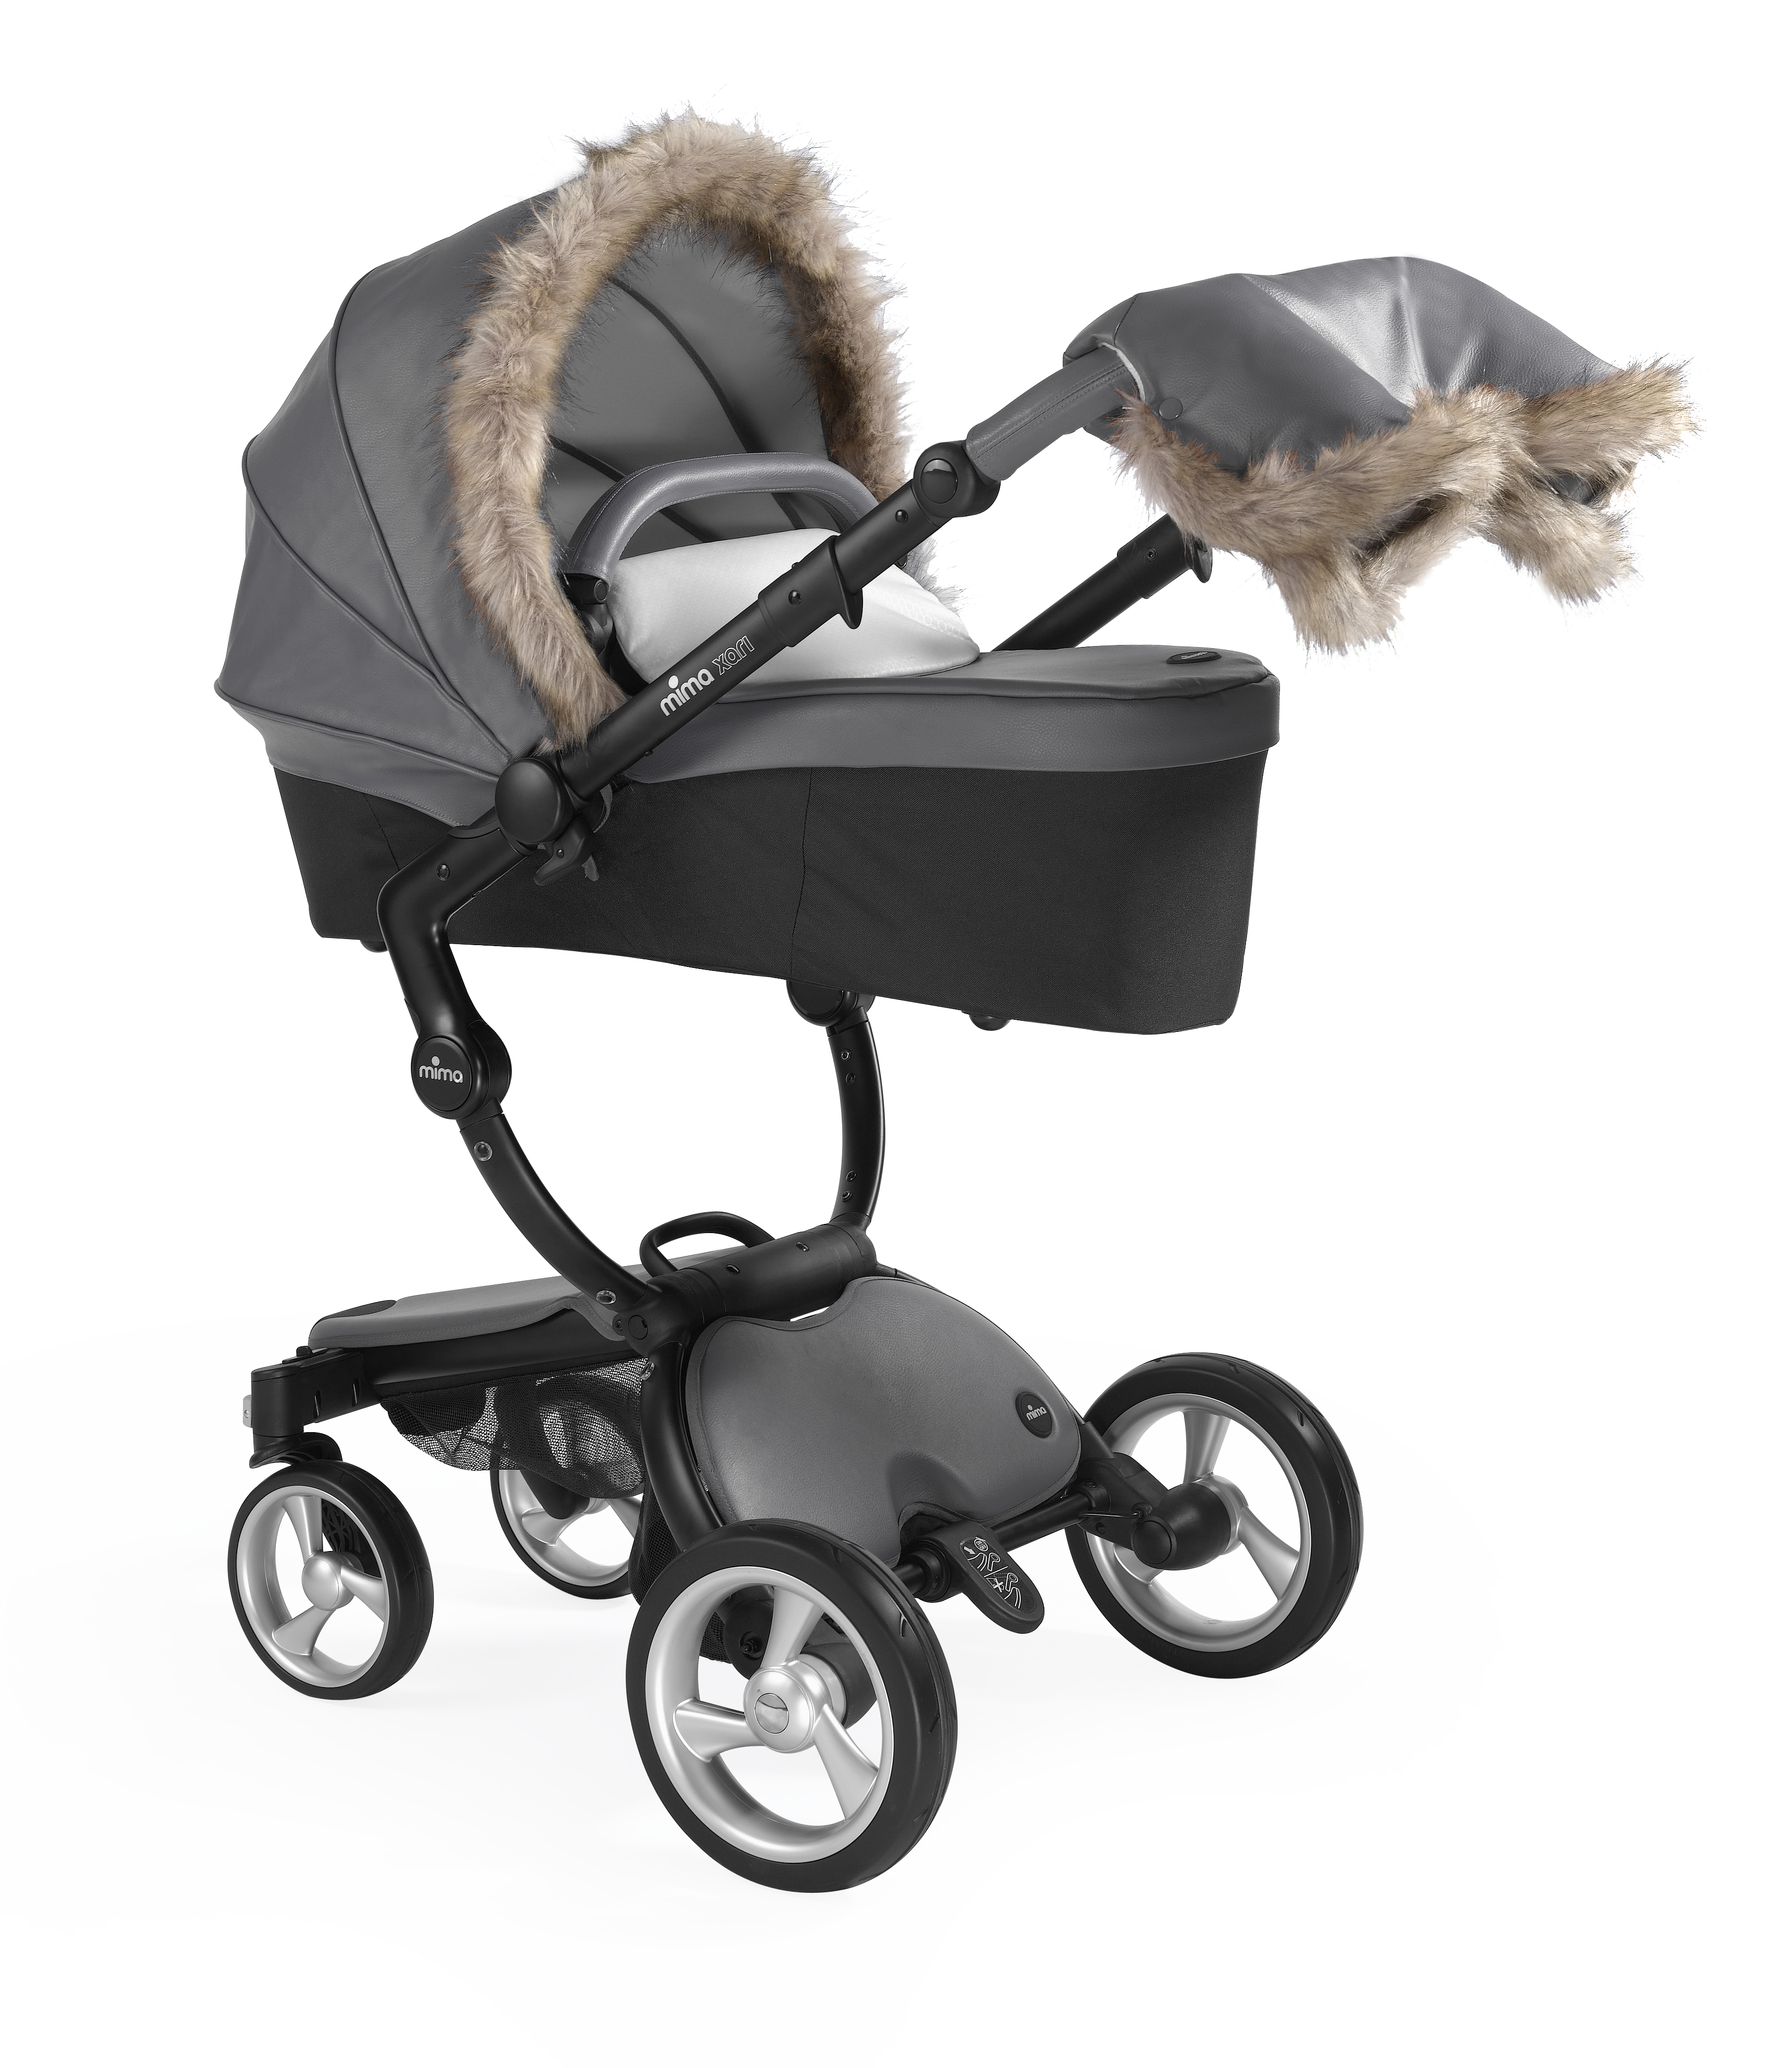 Mima Winter Outfit Stroller, Baby strollers, Mima xari